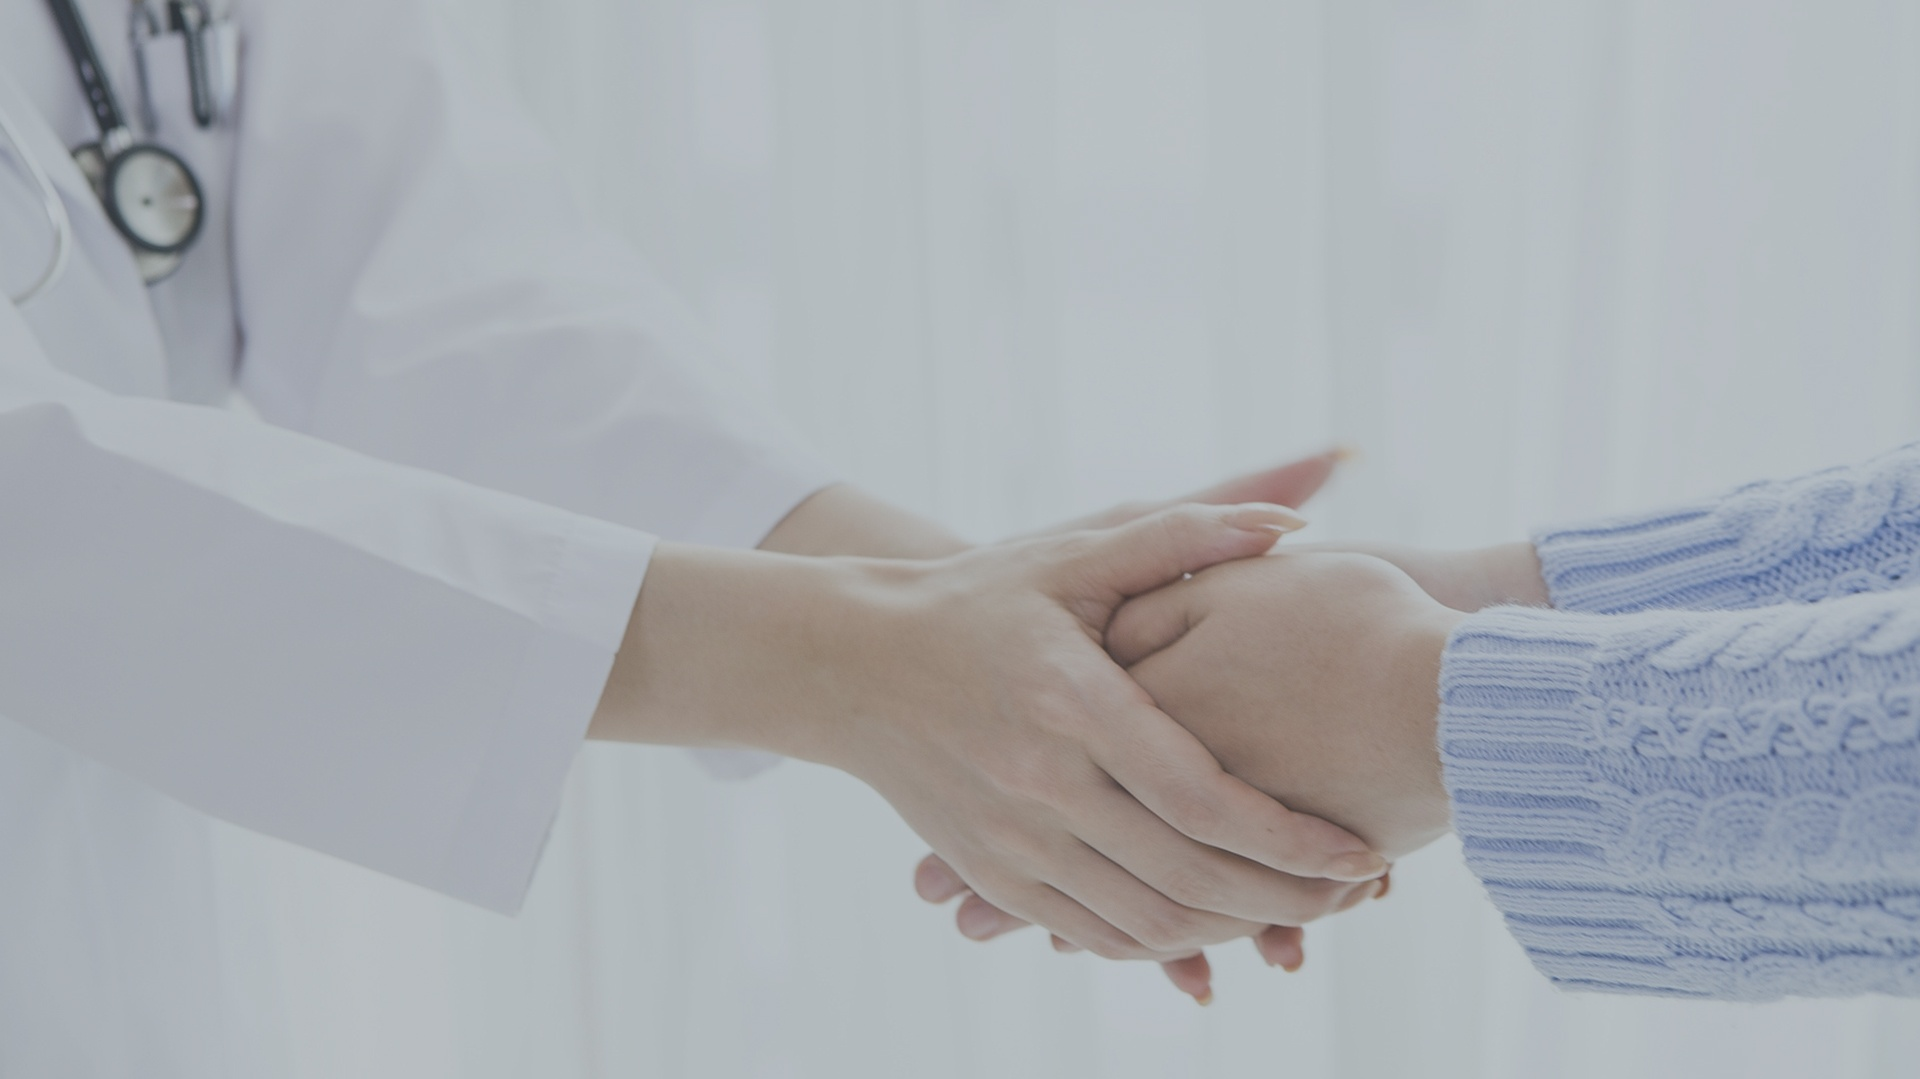 PatientBond Increases Market Share through Improved Loyalty & Acquisition